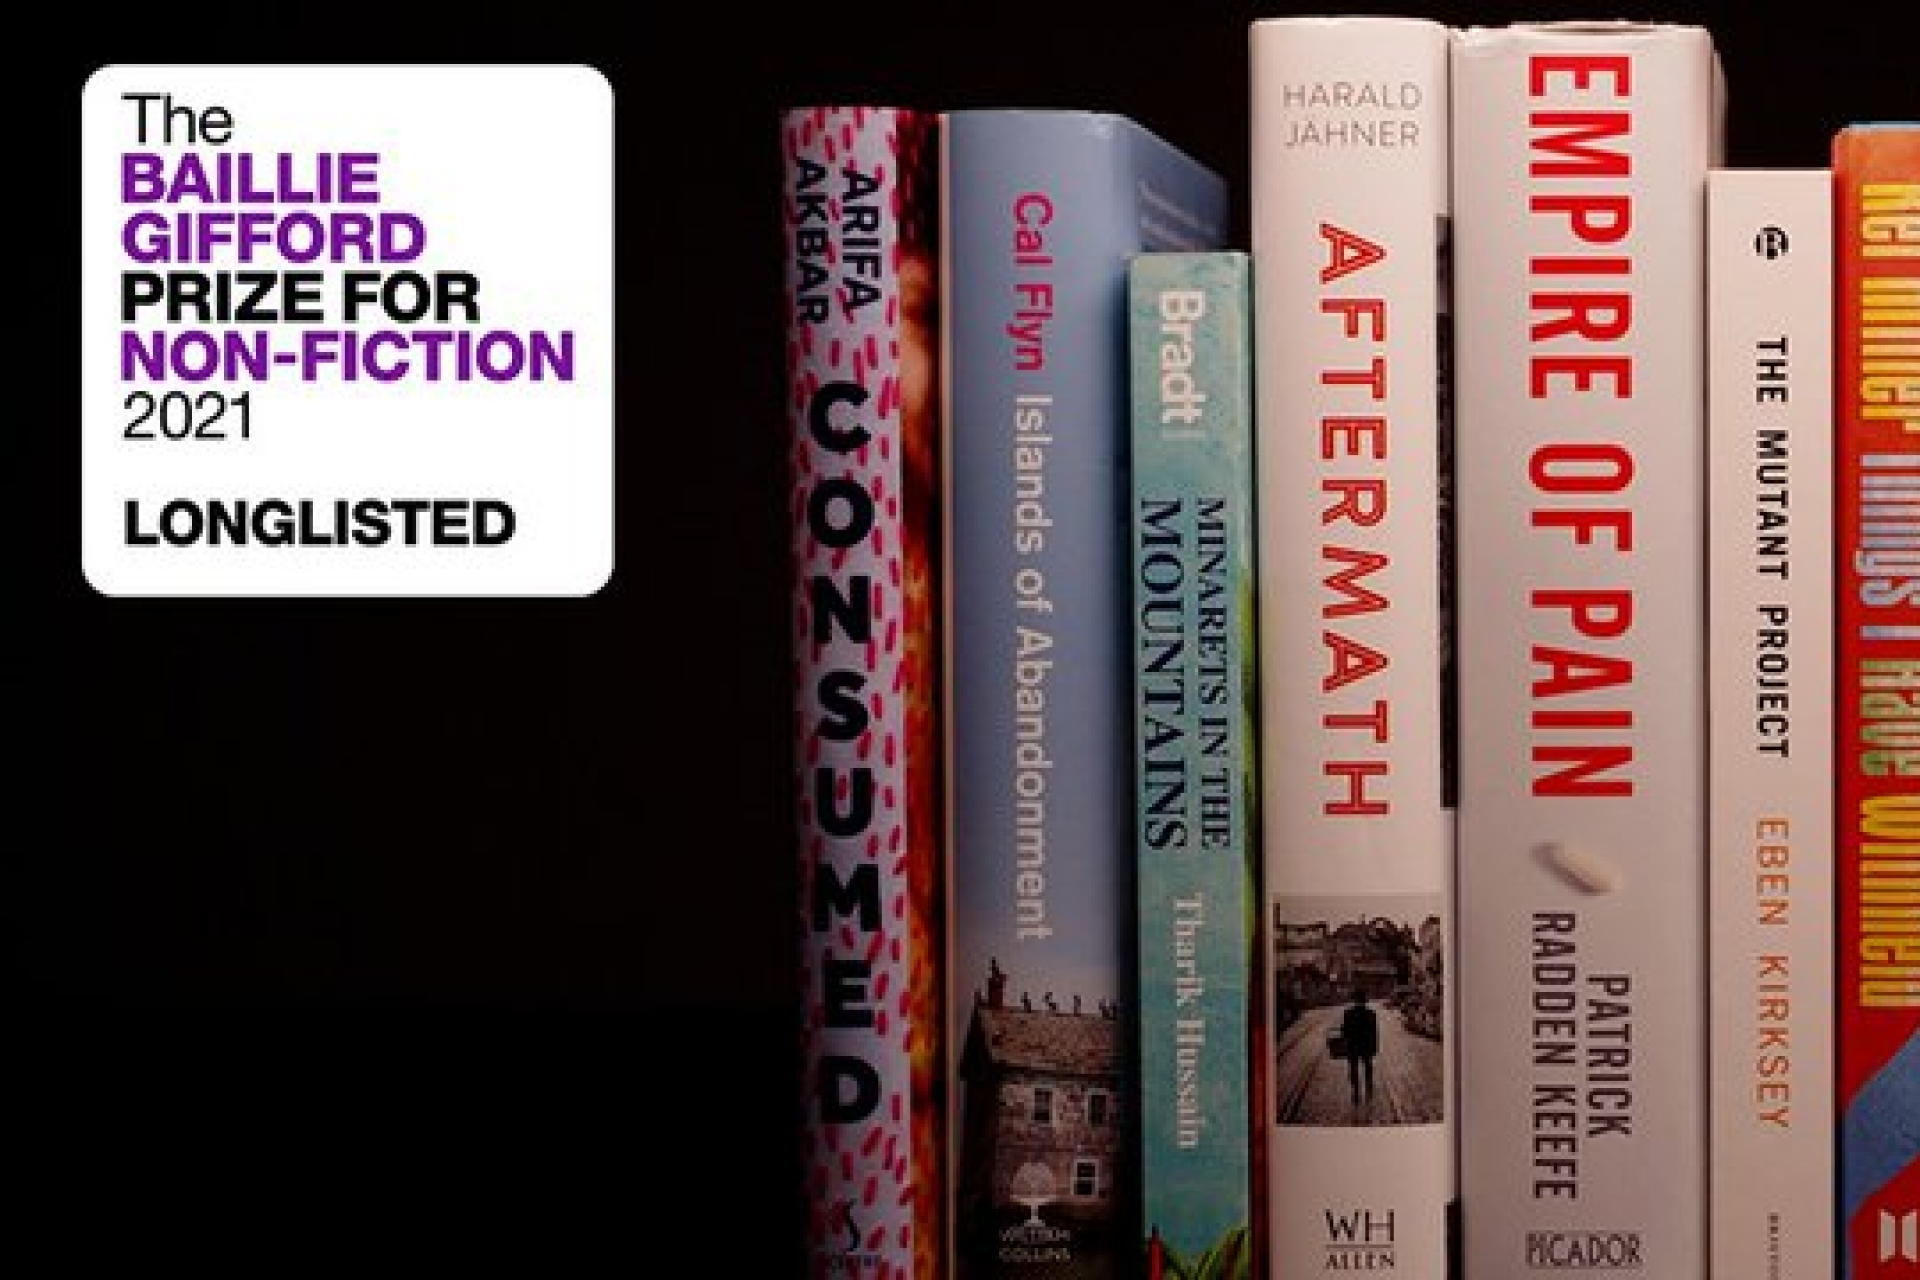 The Baillie Gifford Prize for Non-Fiction 2021 Longlist is announced